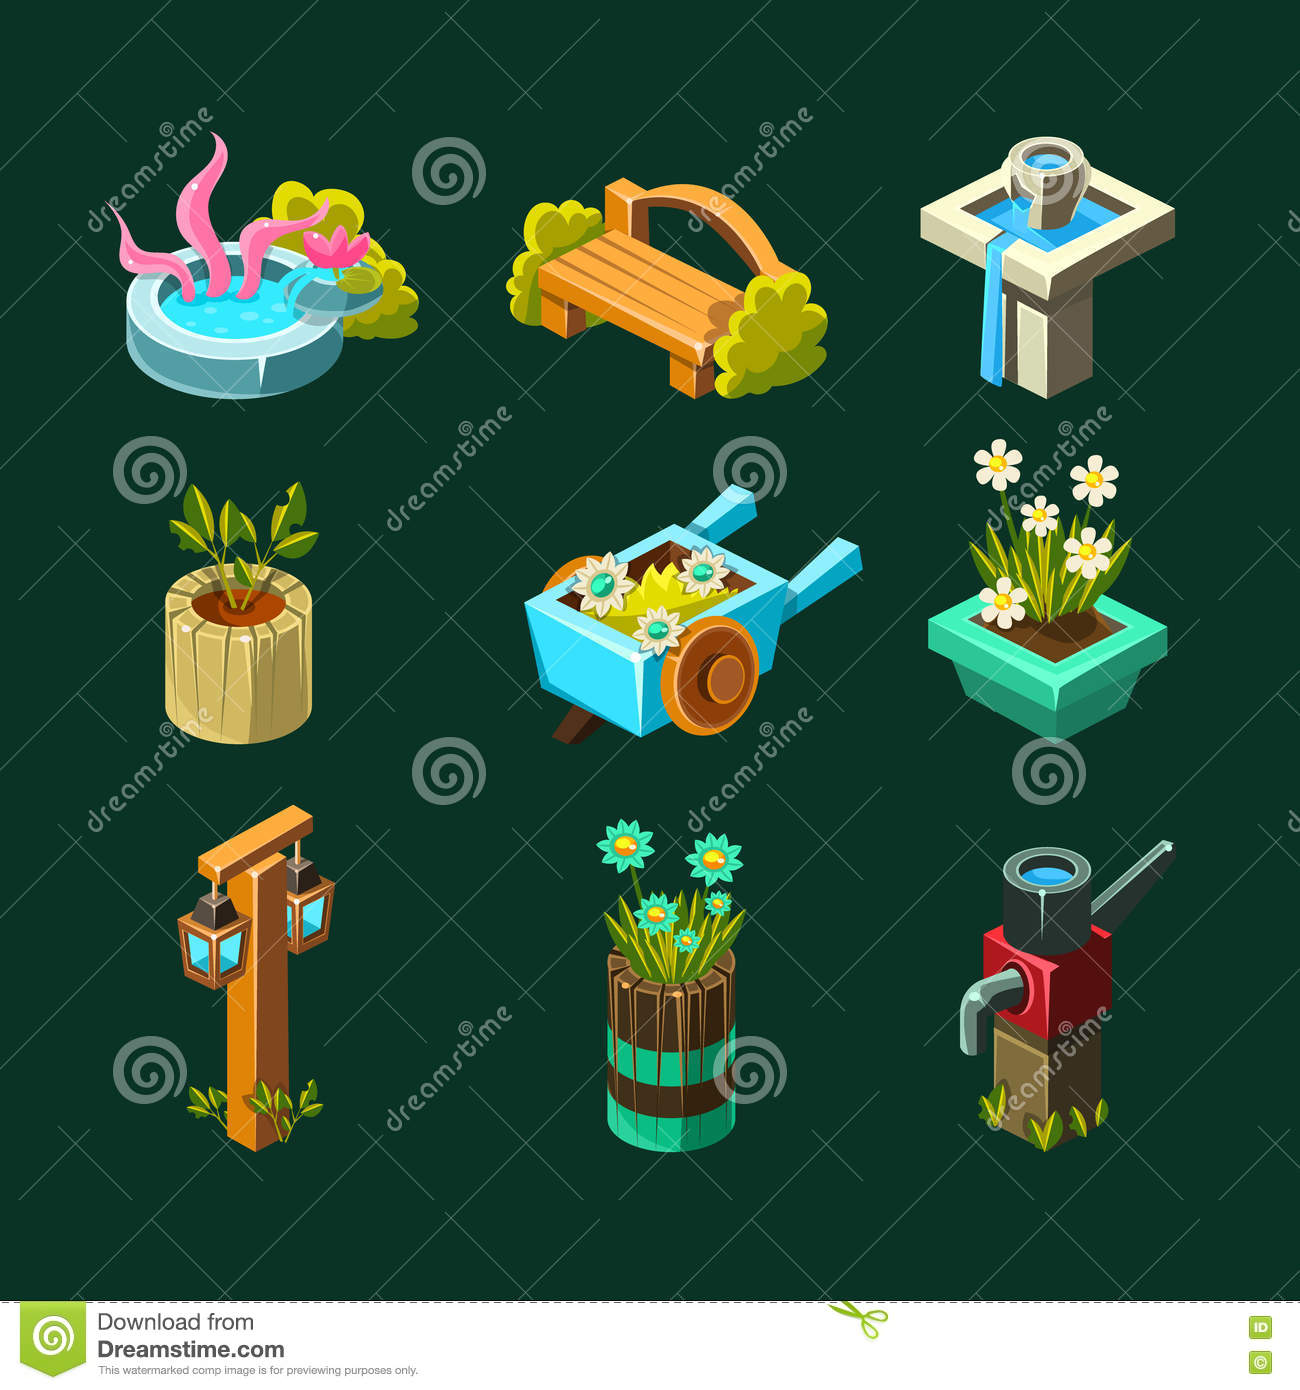 Garden Design Games Collection Classy Video Game Garden Design Collection Of Elements Stock Vector . 2017